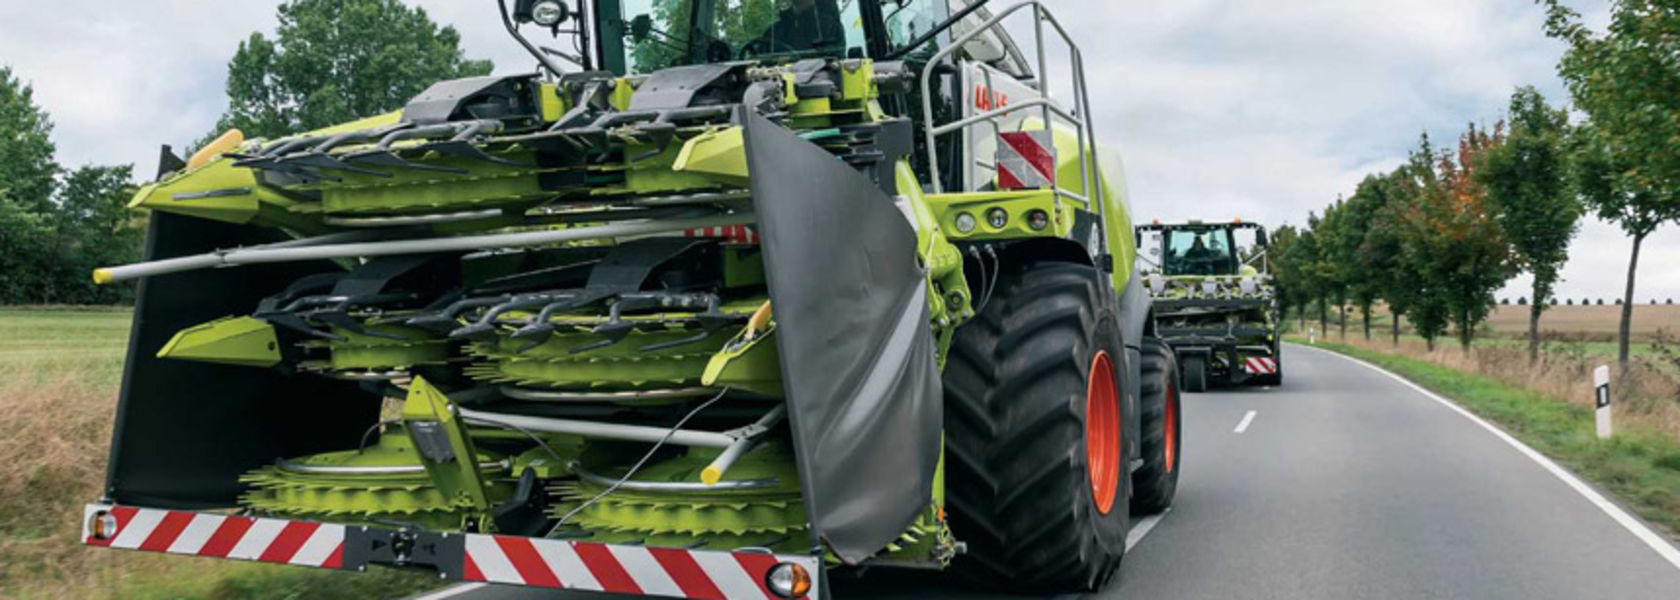 Claas teams up with BMW to enhance road safety